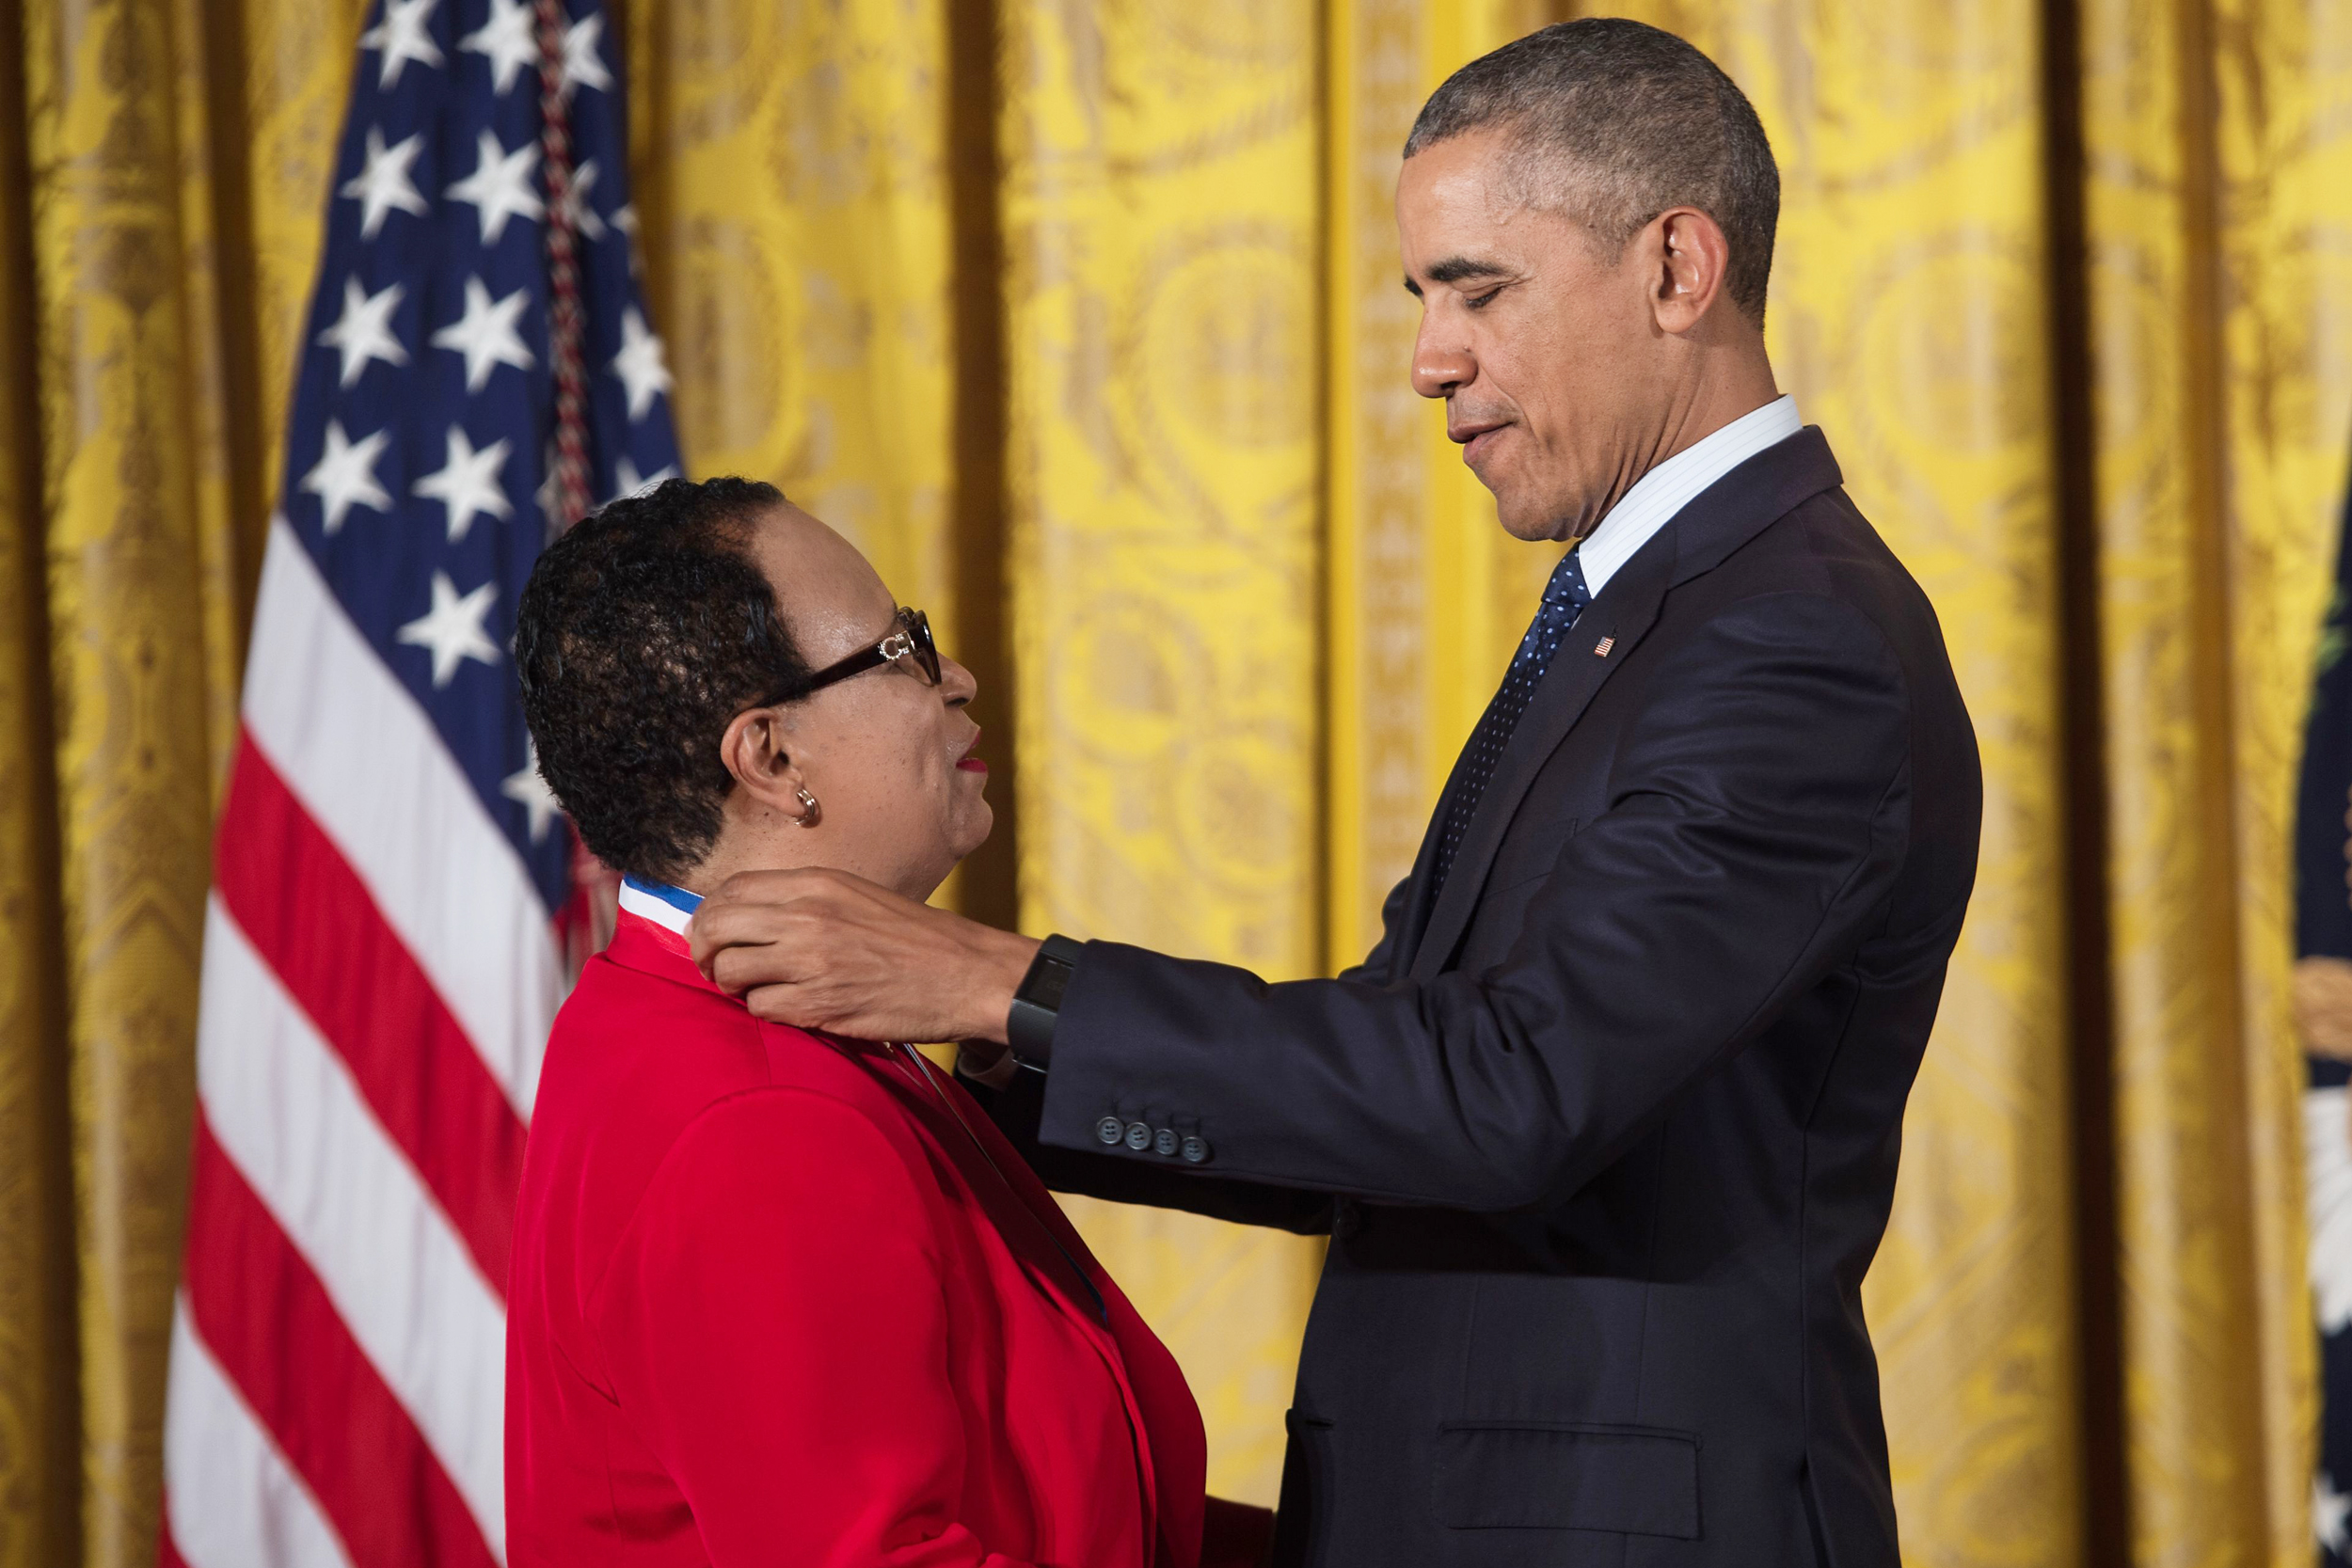 President Barack Obama awards the National Medal of Science to Dr. Shirley Ann Jackson, for her work in condensed matter physics and particle physics and her science-rooted public policy achievements, at the White House May 19, 2016.